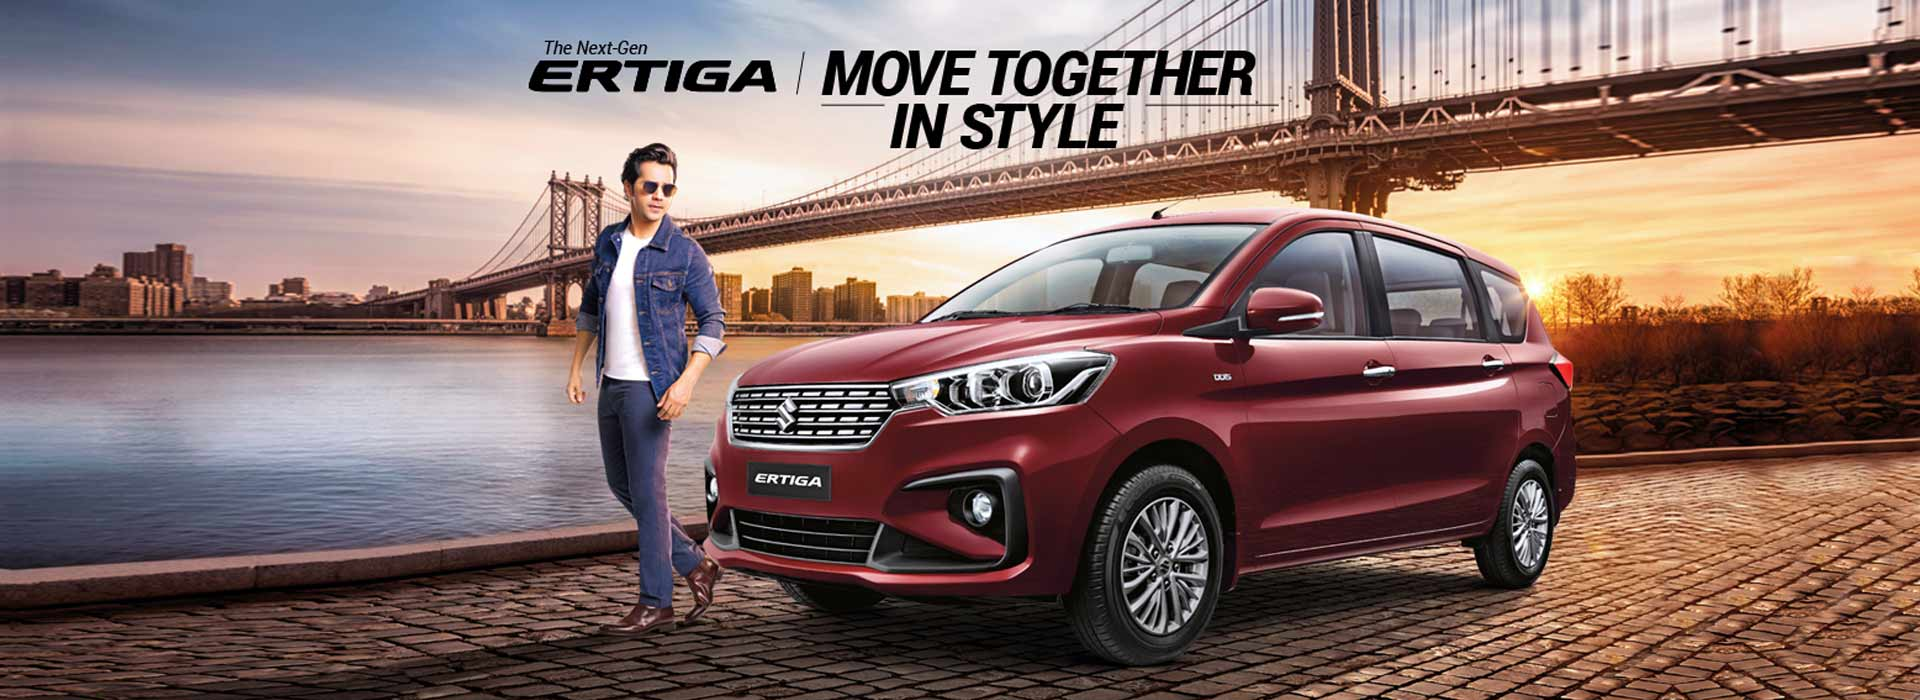 Maruti Cars Dealer in Delhi, Gurgaon, Indore | Maruti Car